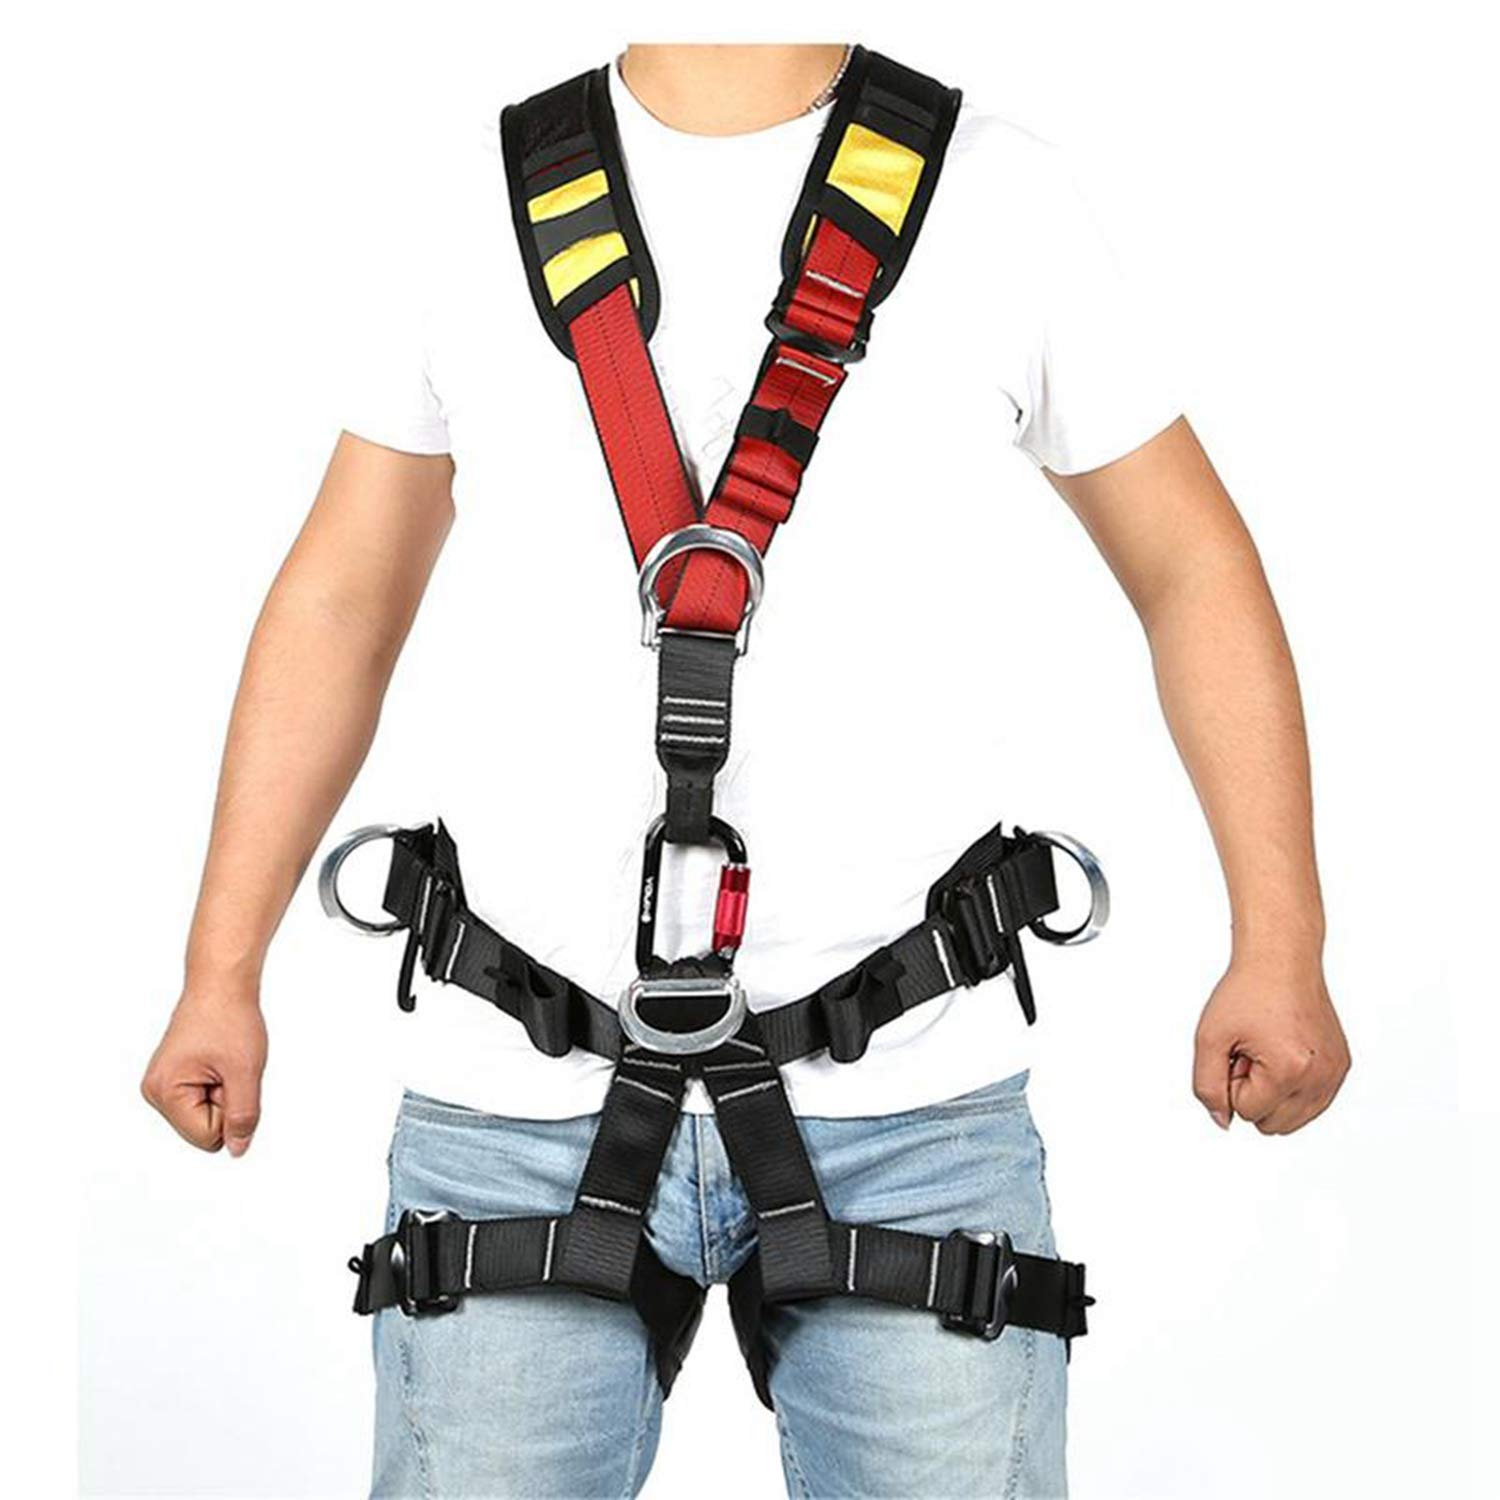 Nrpfell Outdoor Climbing Rock Rappelling Mountaineering Accessories Body Wearing Seat Belt Sitting Waist Bust Protection by Nrpfell (Image #4)